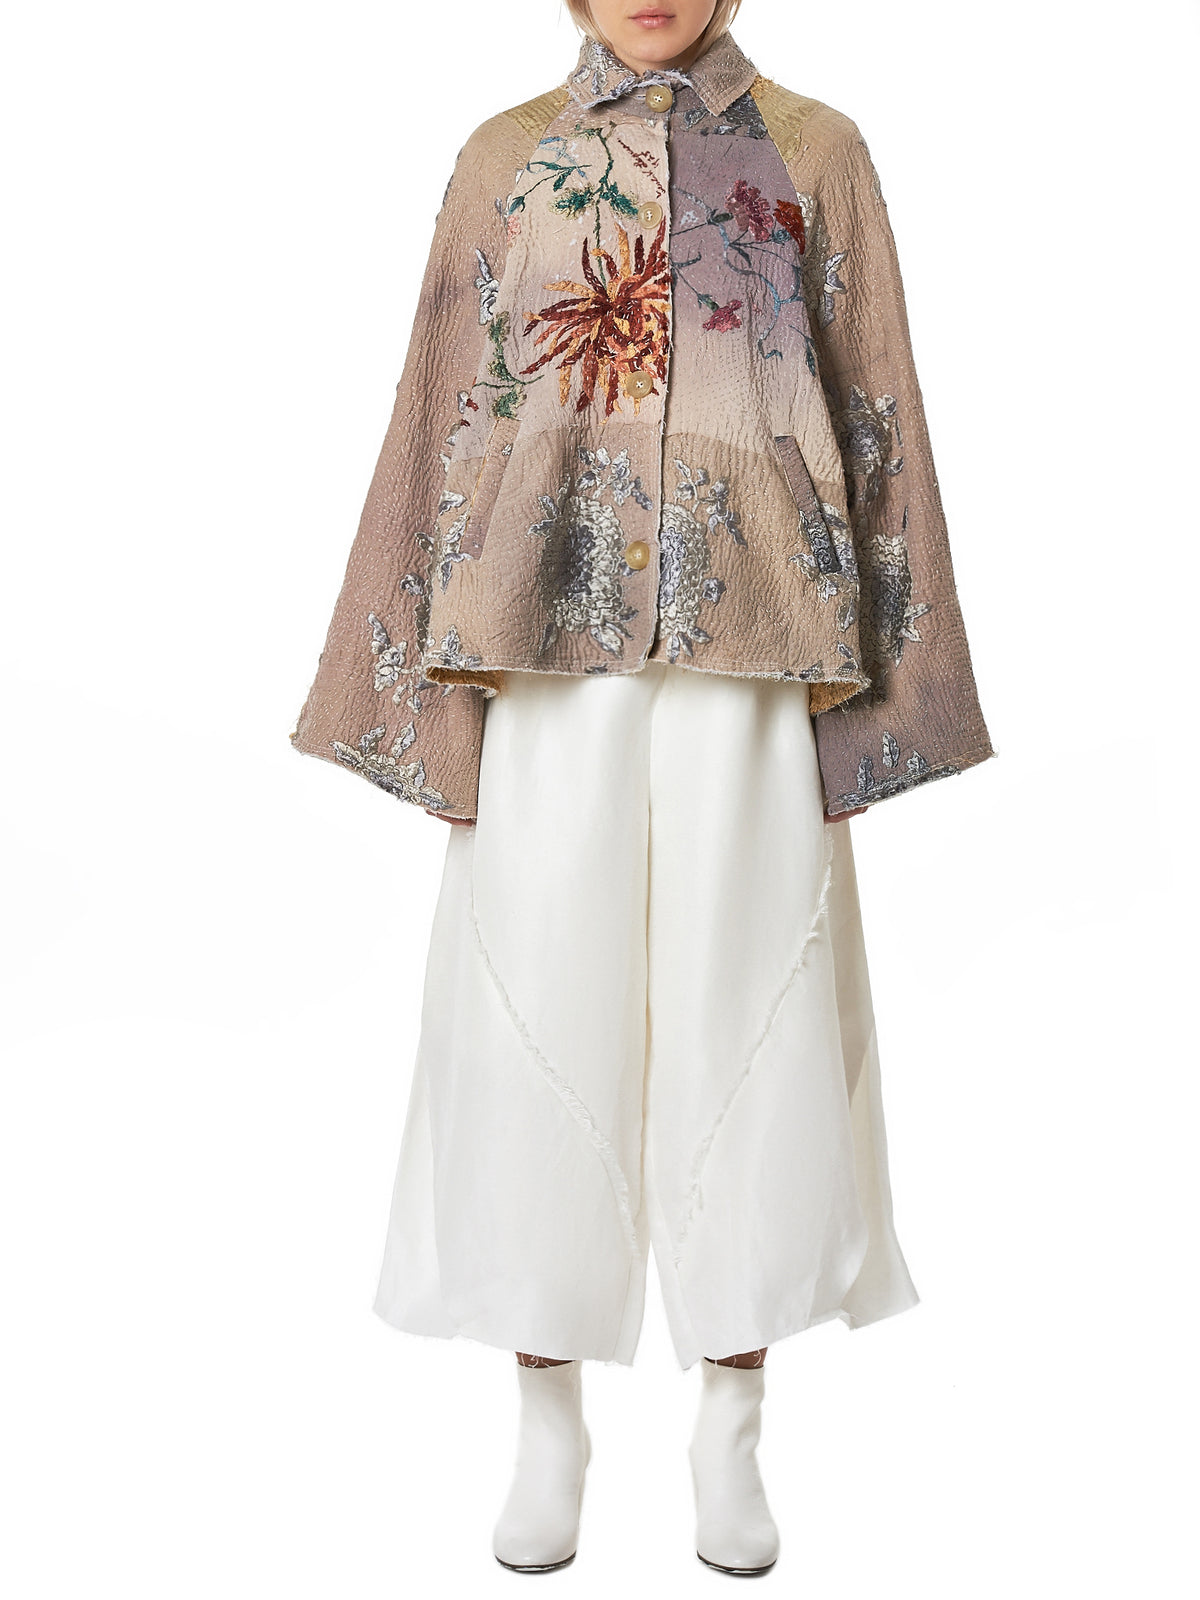 By Walid Embroidered Jacket - Hlorenzo Front